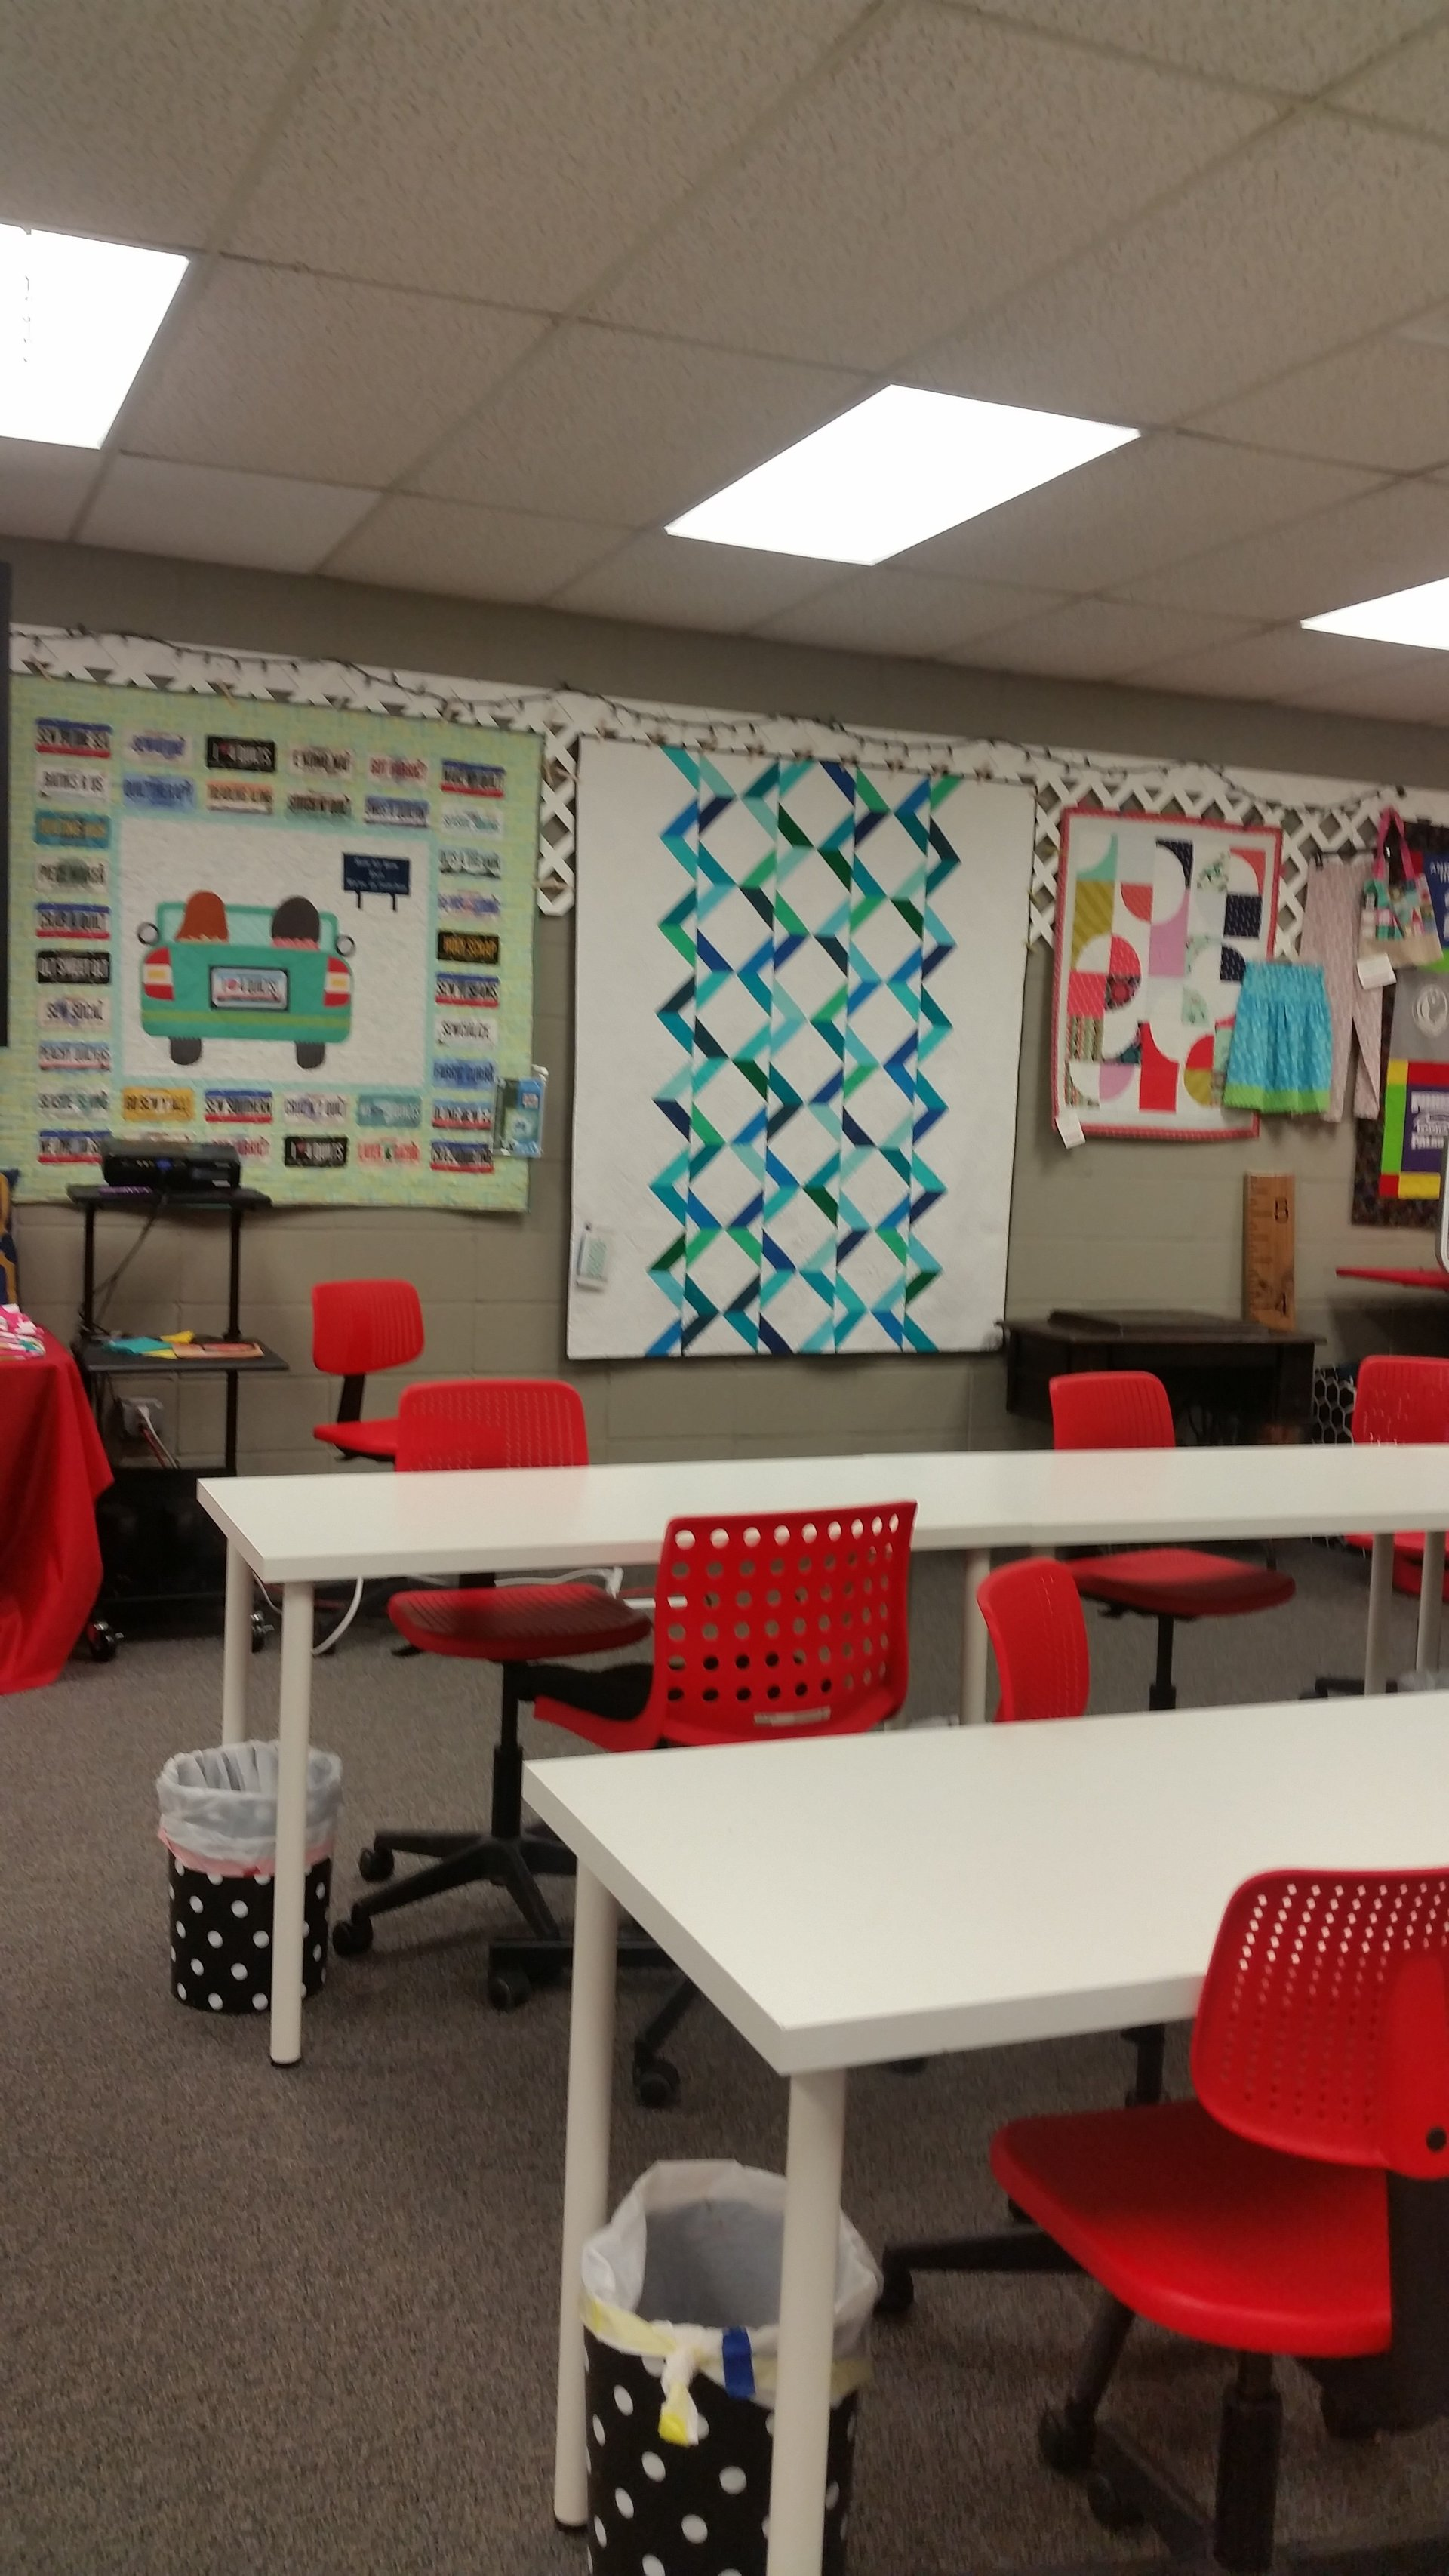 Sewing and quilting classes